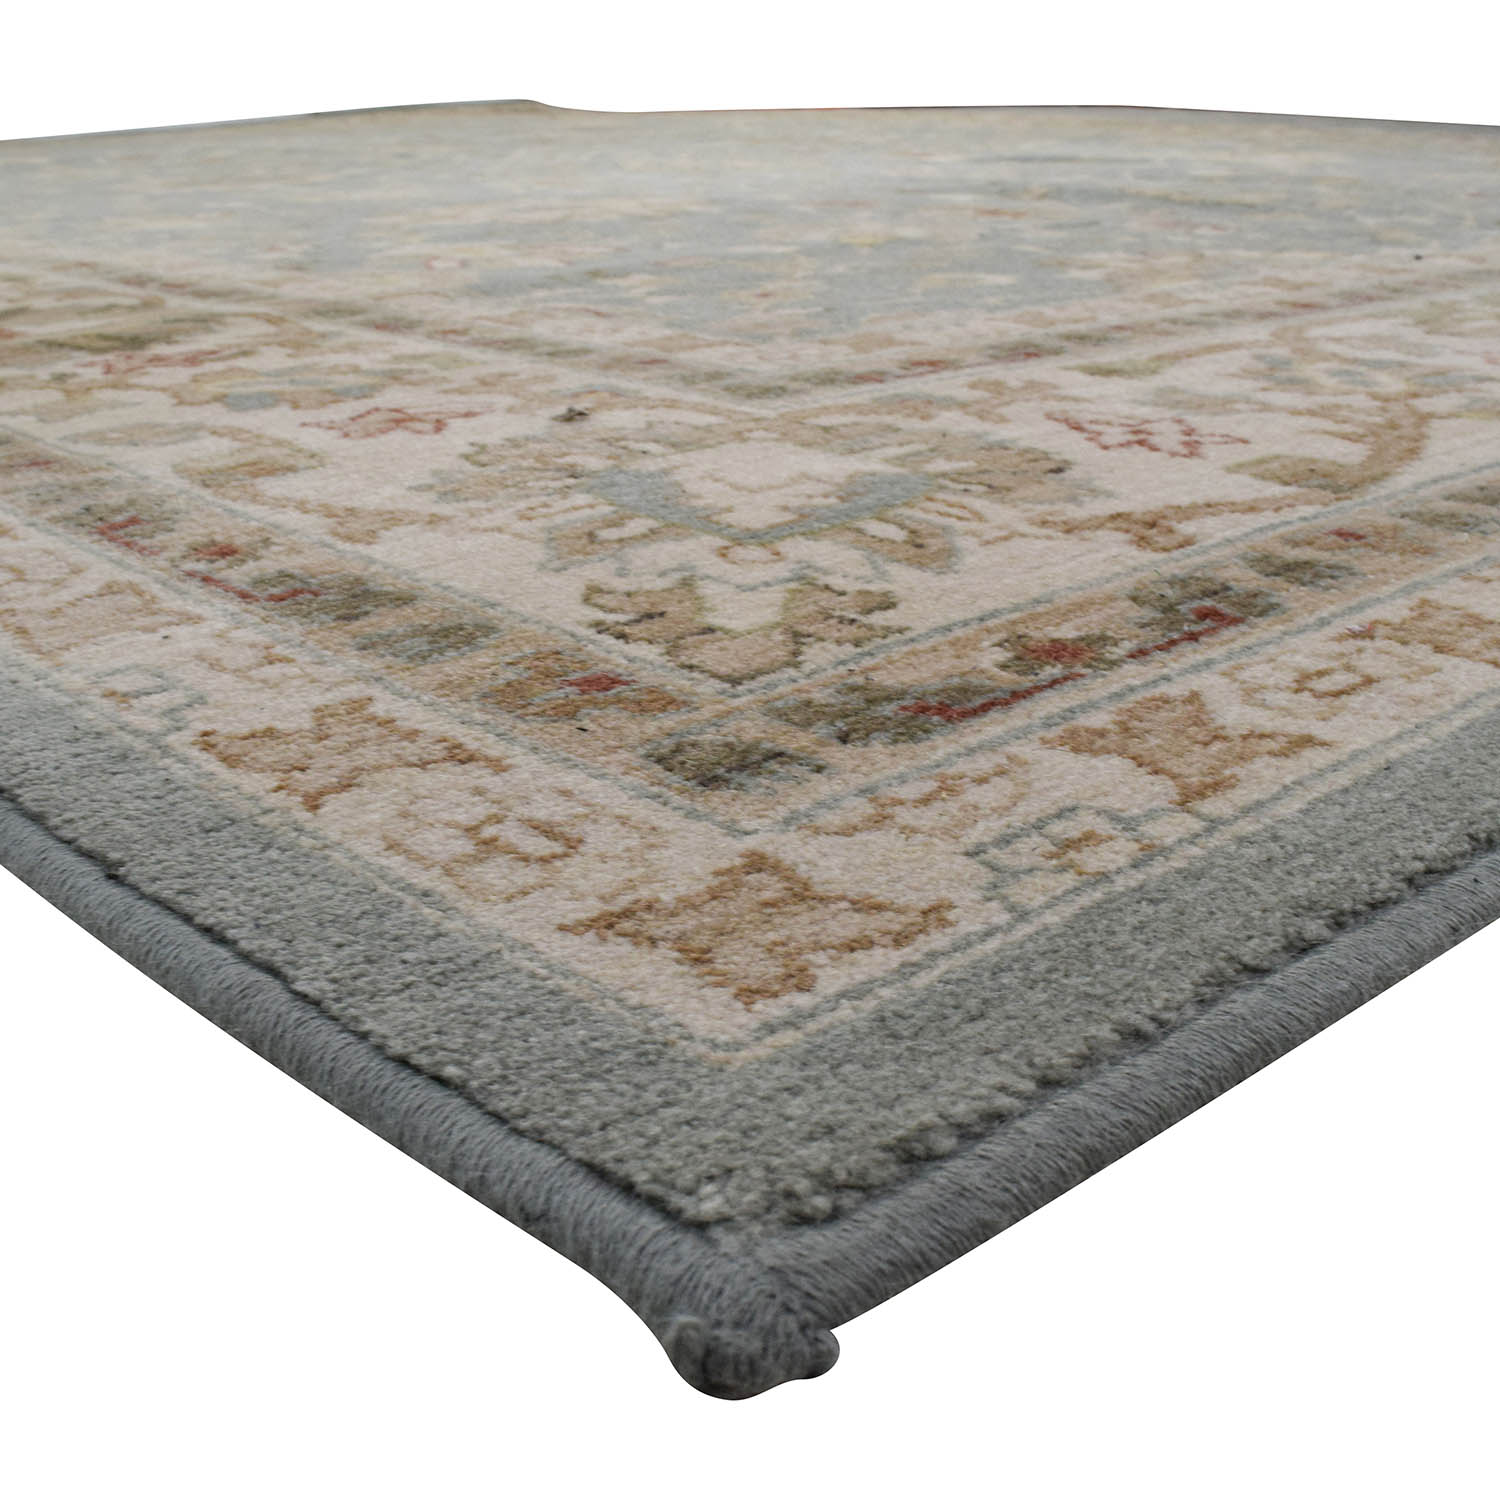 Green and Beige Rug coupon